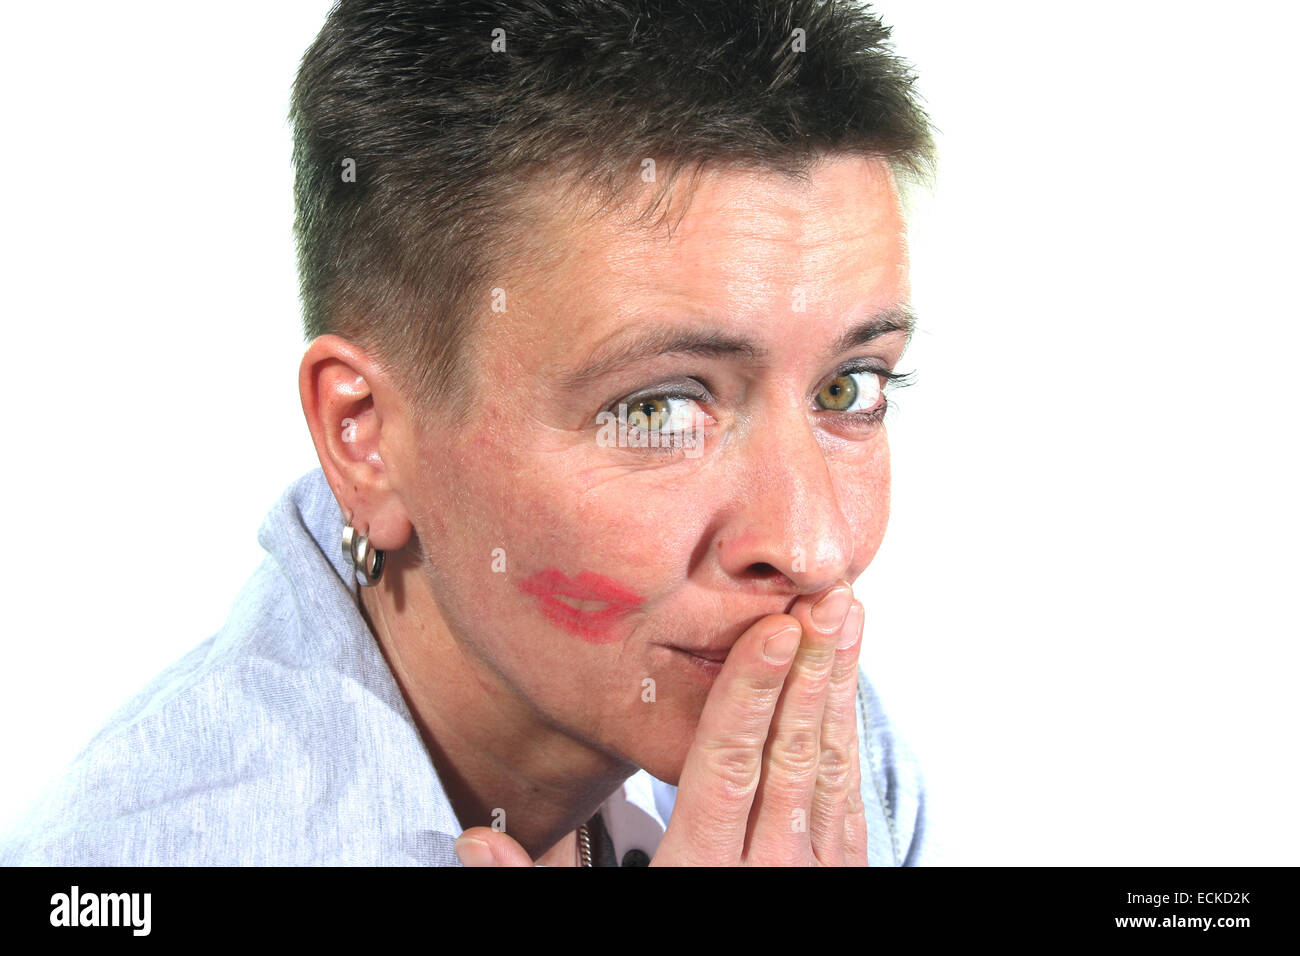 a young Woman embarrassed after a kiss - Stock Image